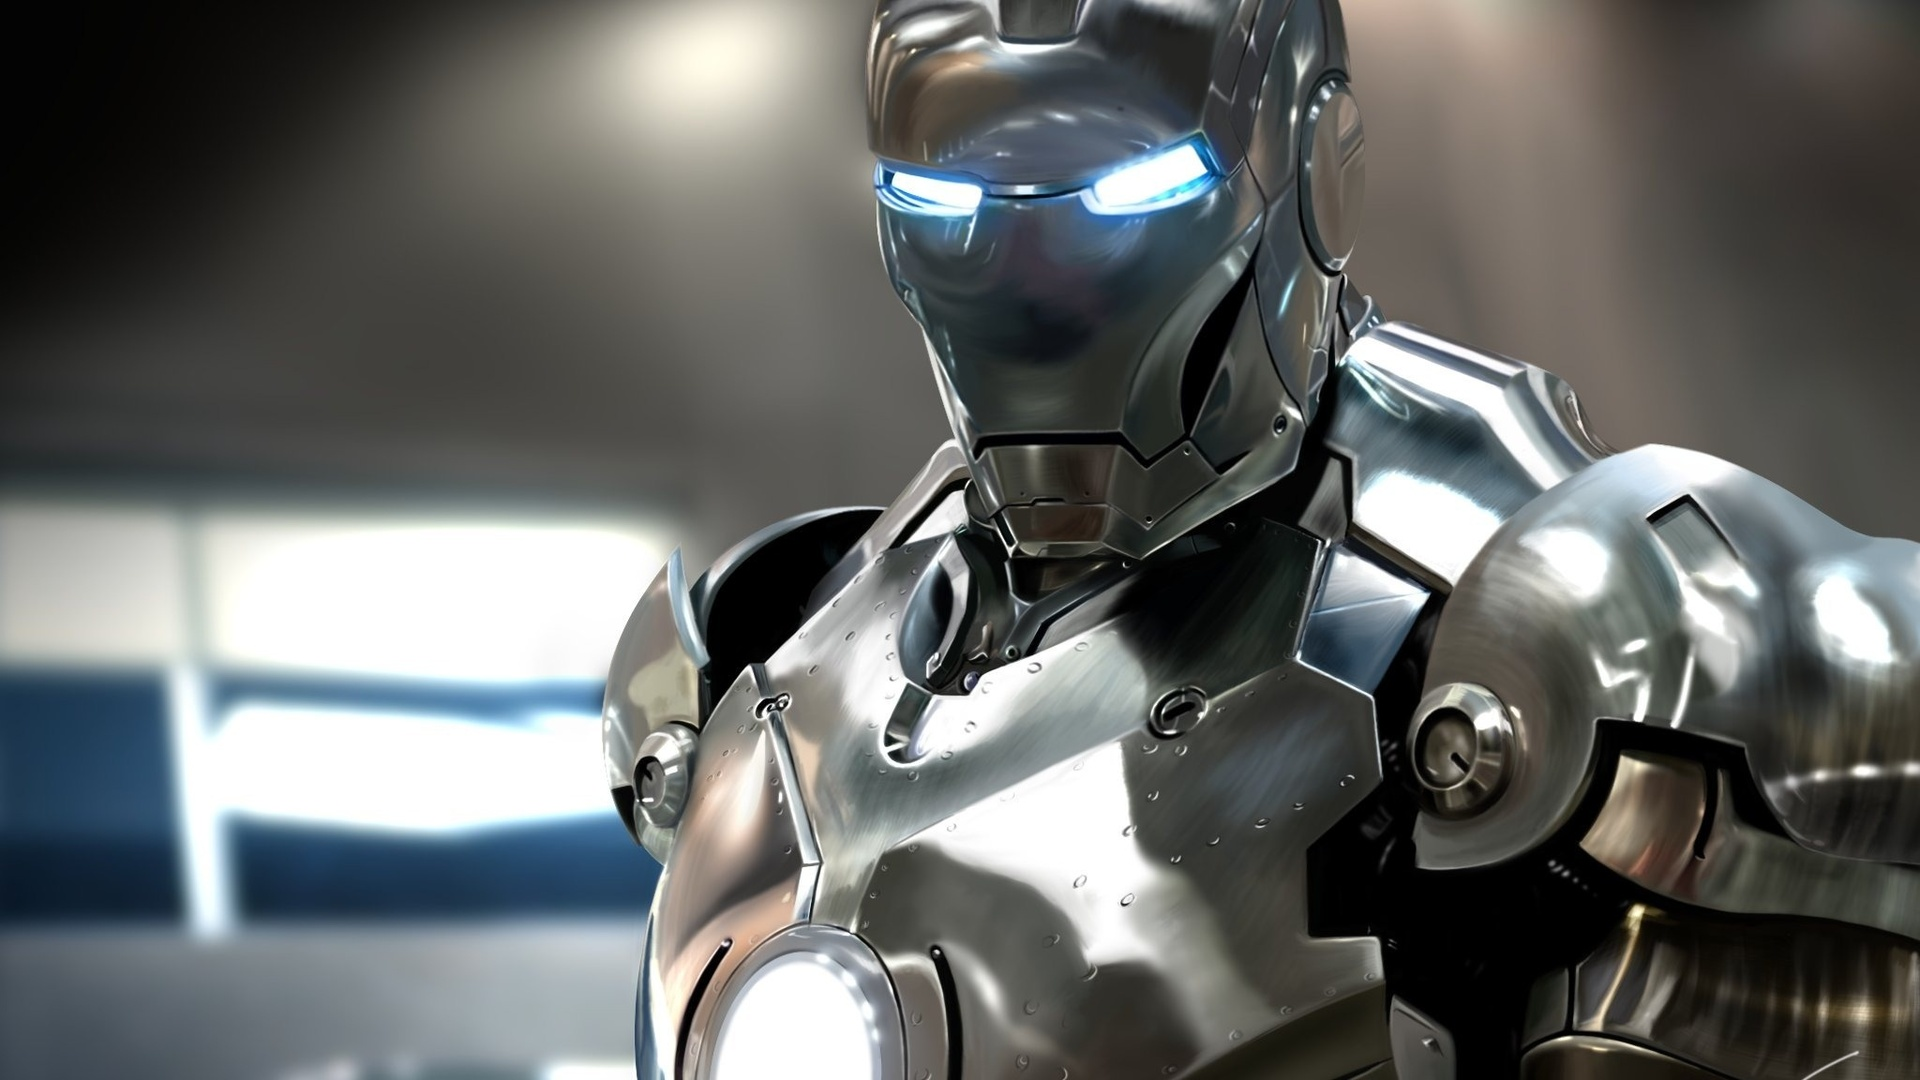 Robot photo wallpaper high definition high quality widescreen - Image de iron man ...